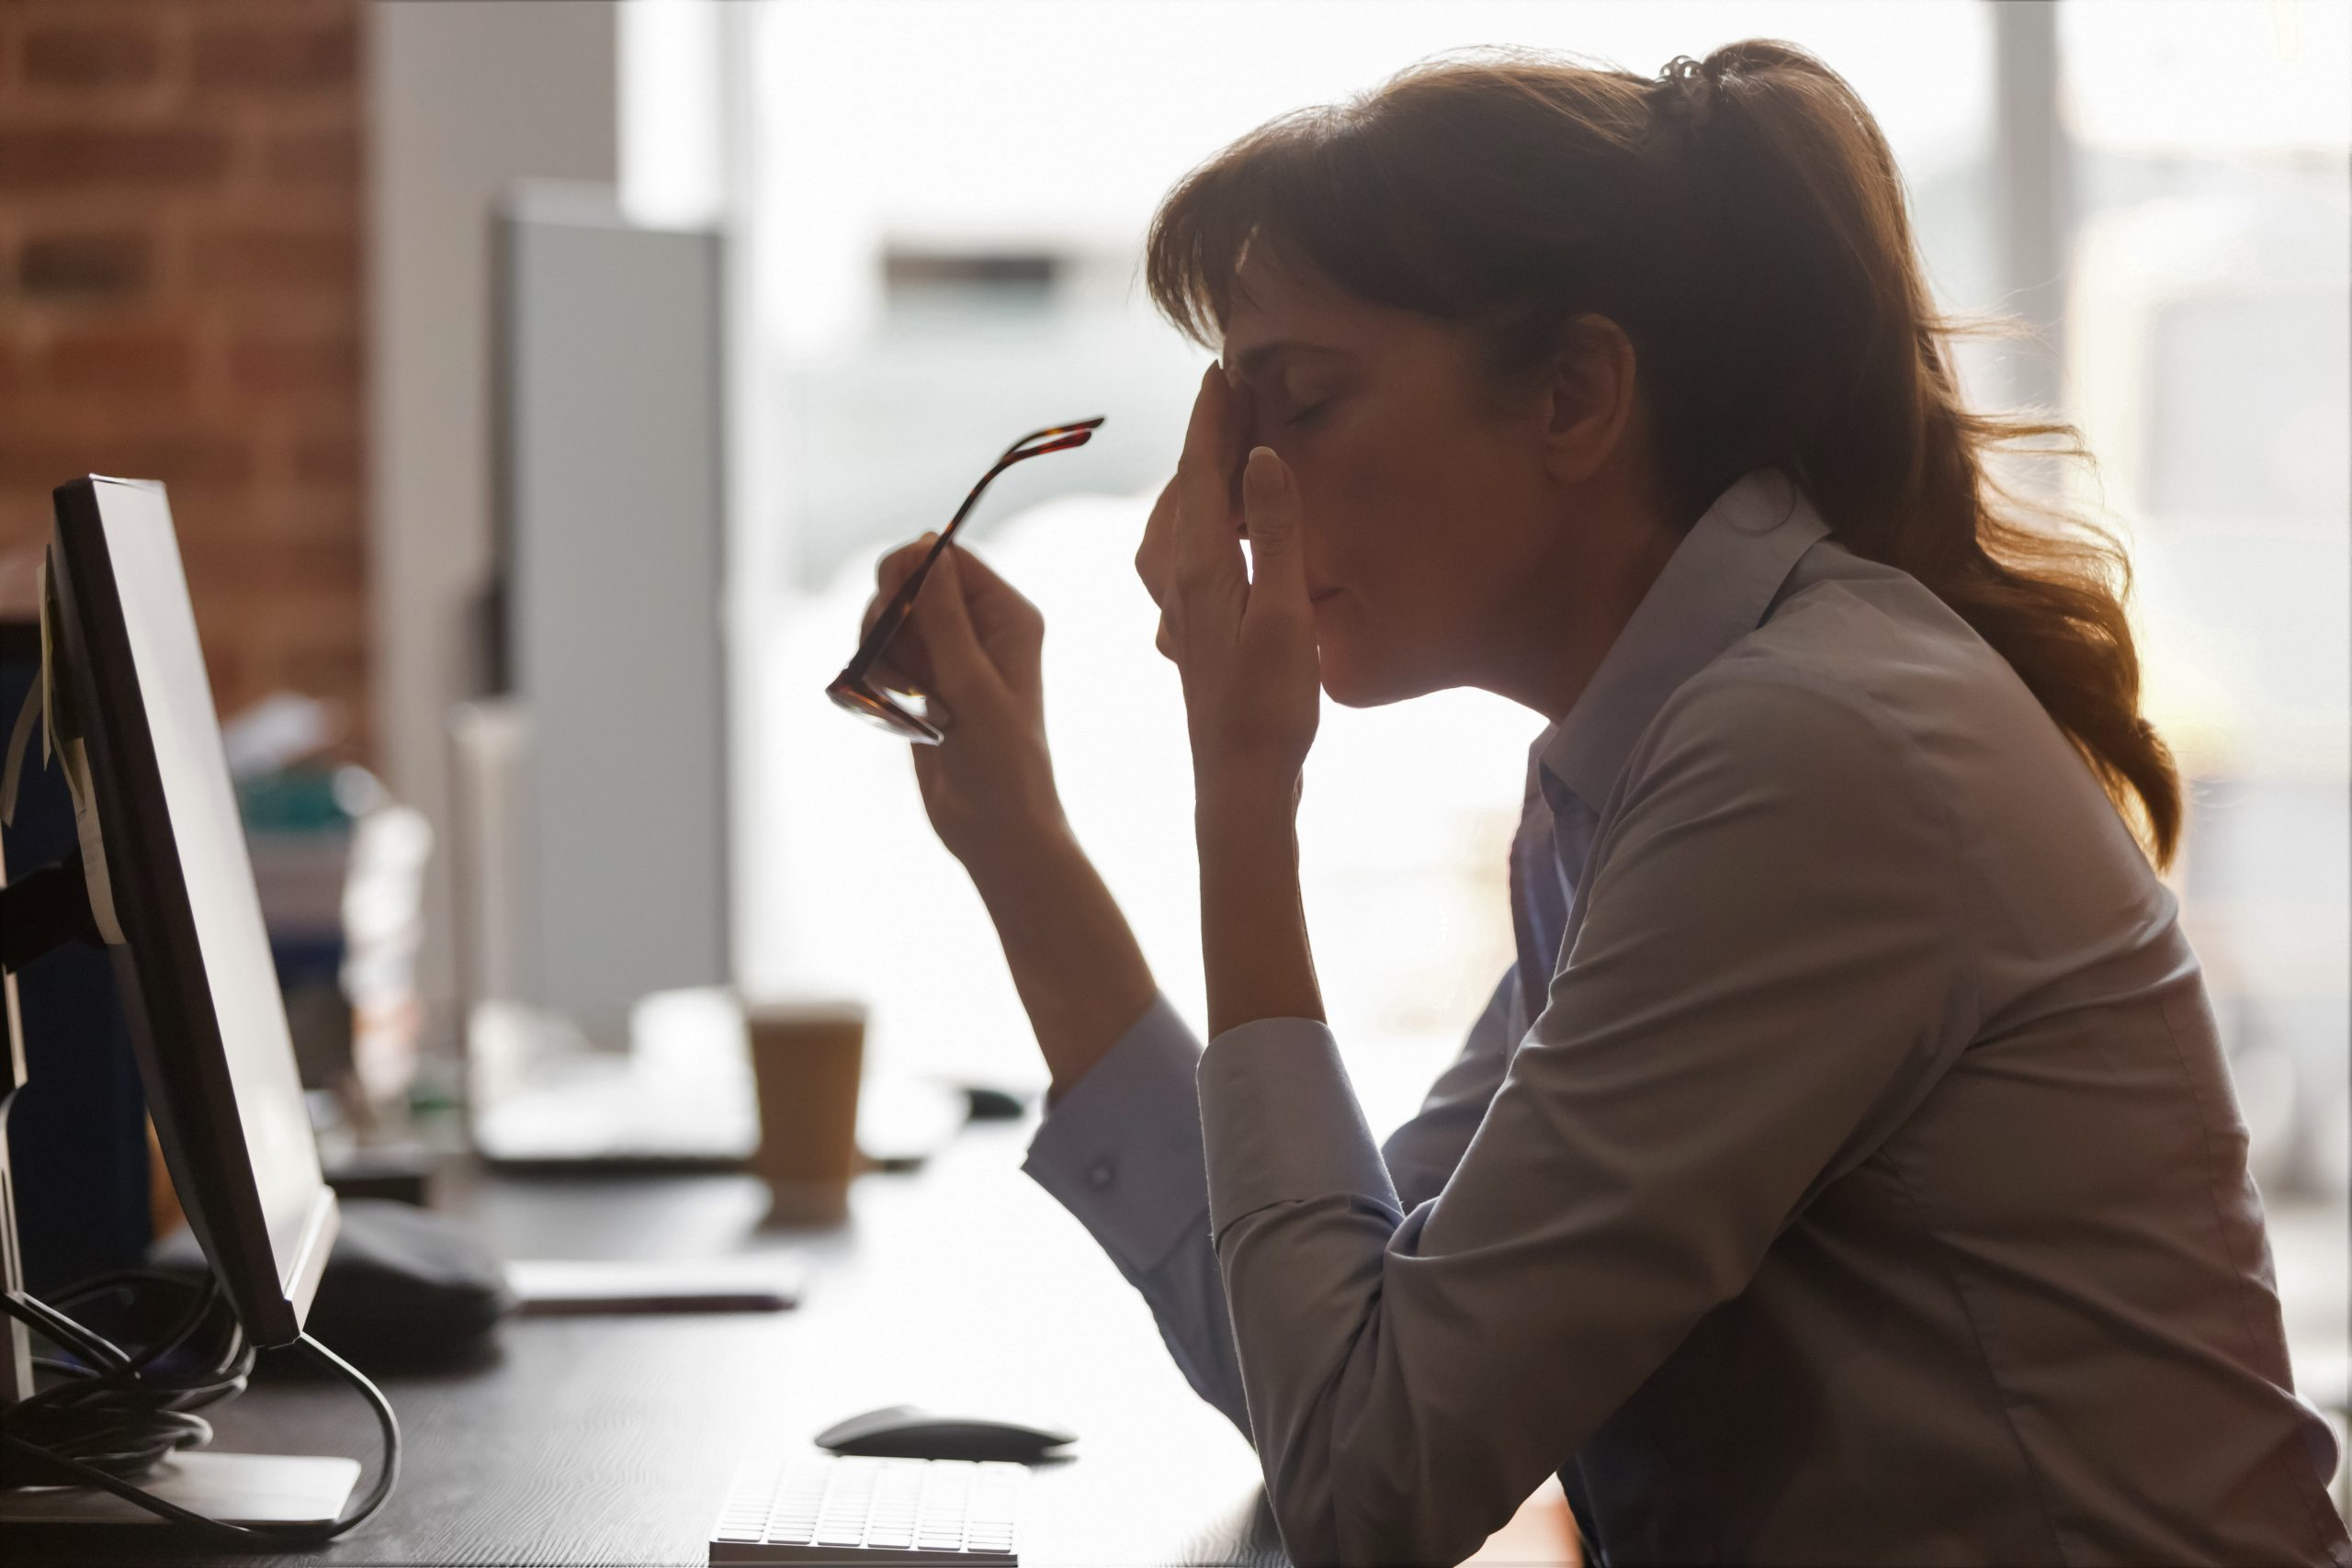 Young adult woman wearing a business suit taking off her glasses in despair as she displays staff negativity after returning back to work